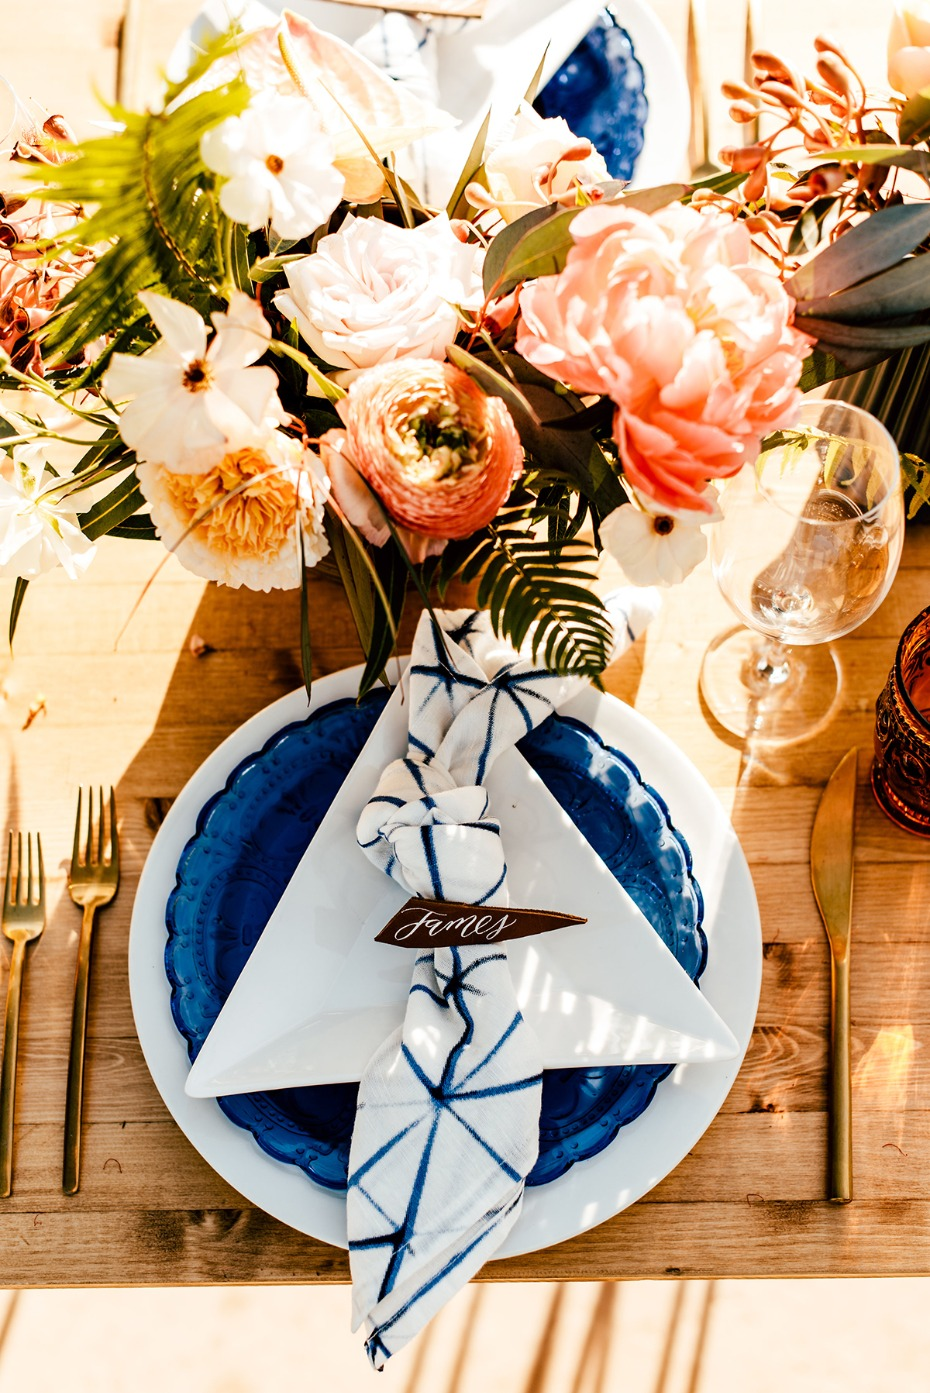 modern white and blue place setting